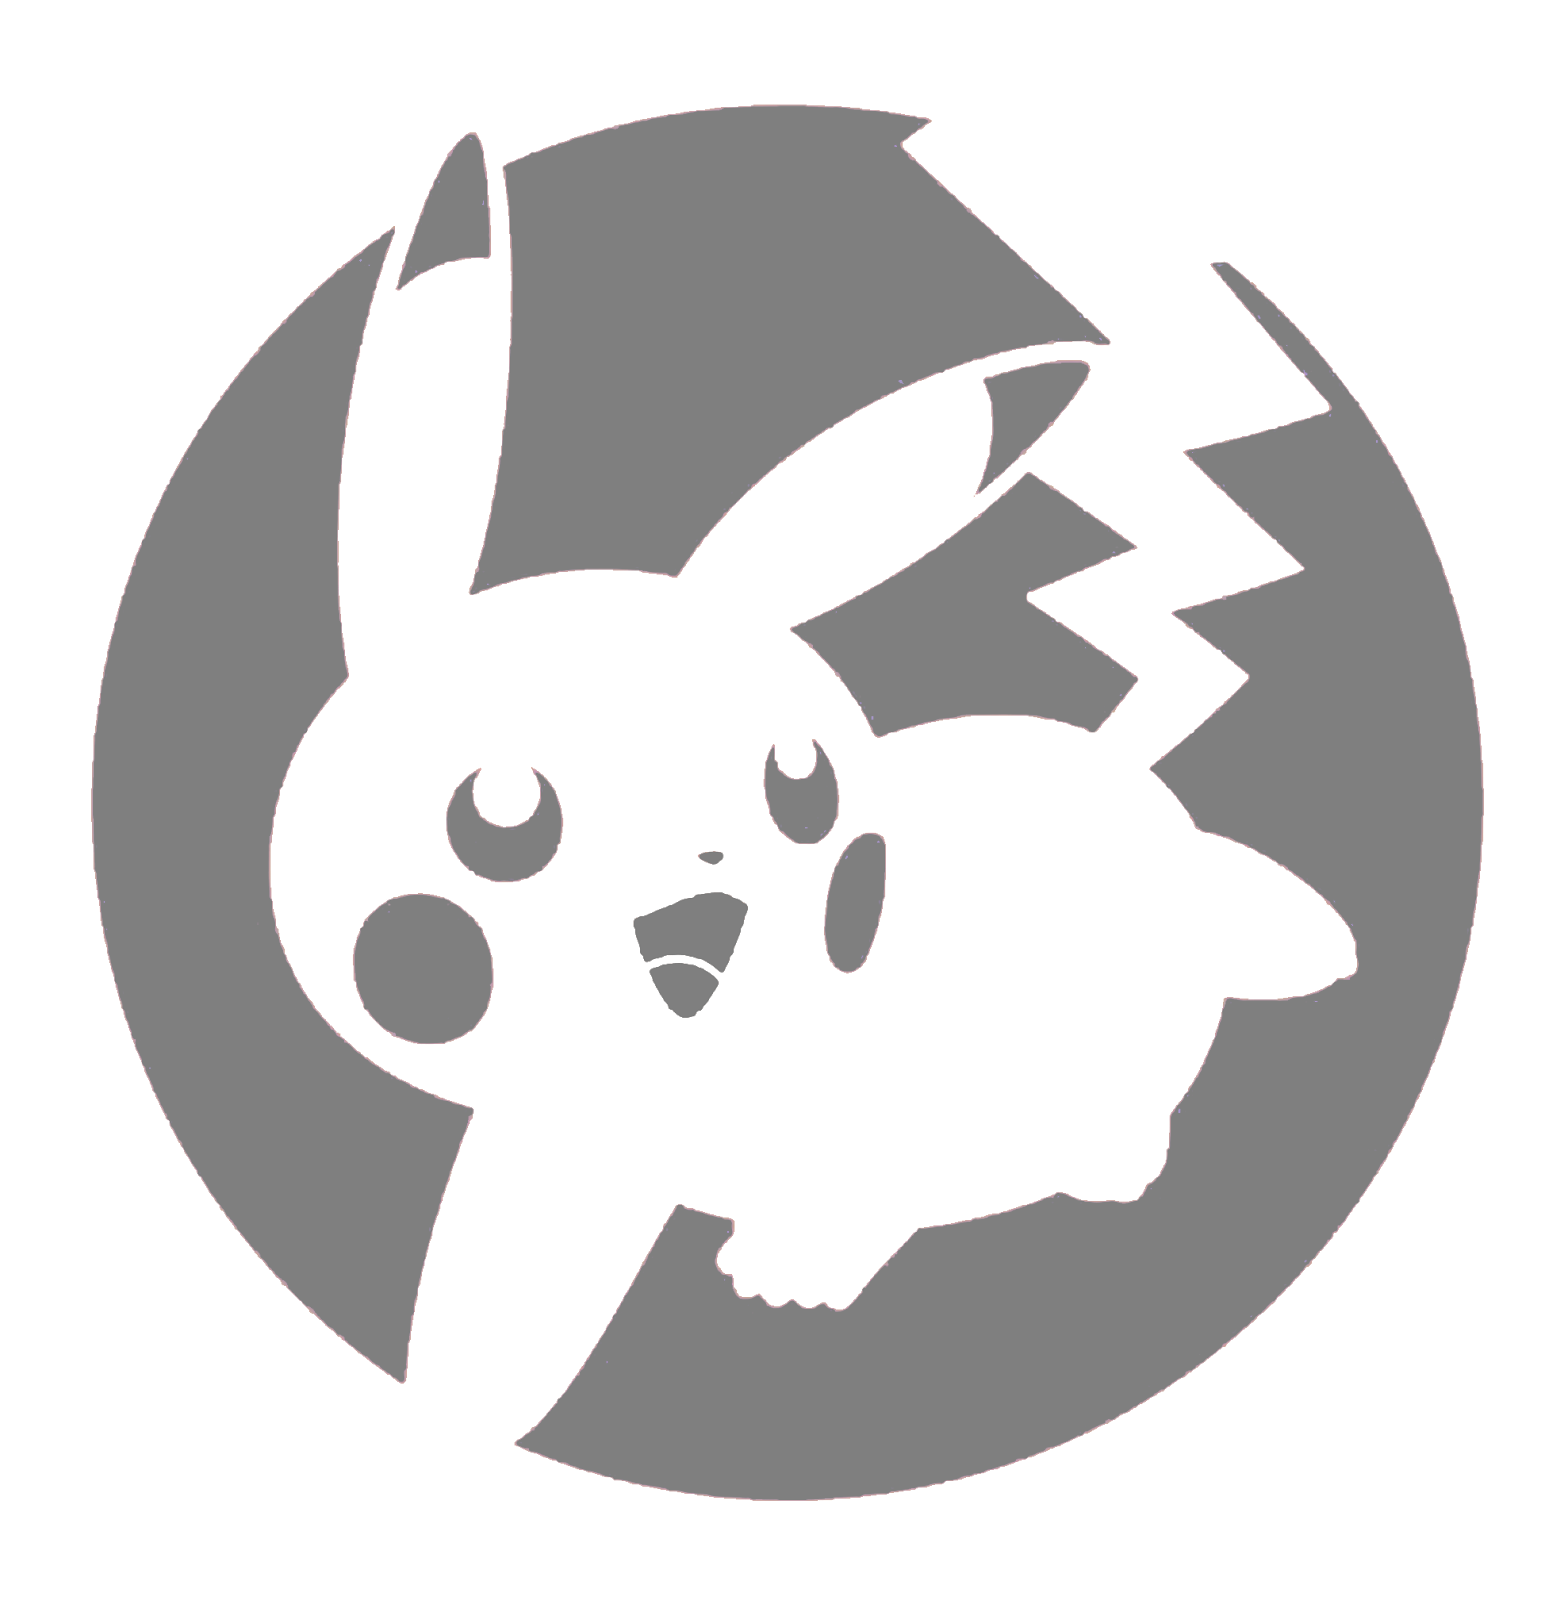 Joker clipart pumpkin stencil. Yummy pikachu pokemon for